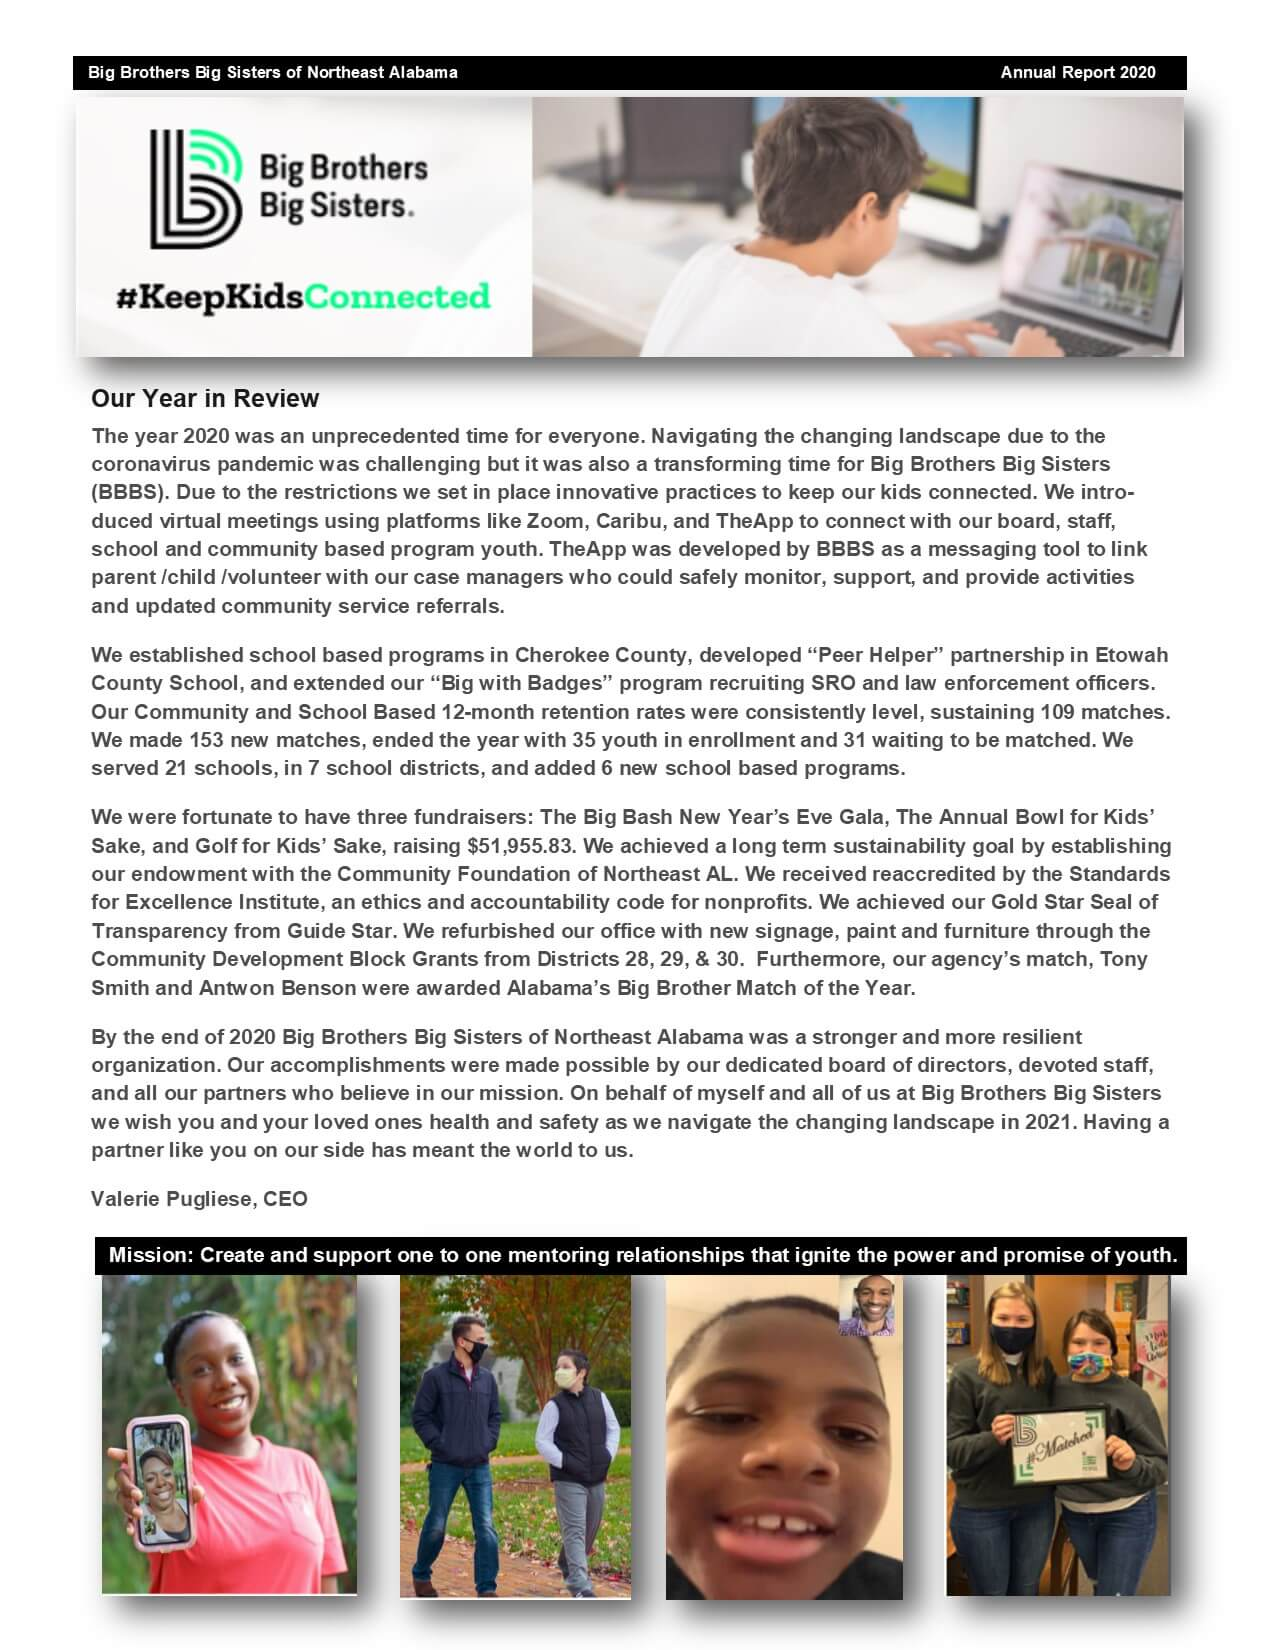 Big Brothers Big Sisters Annual Report 2020-pg1